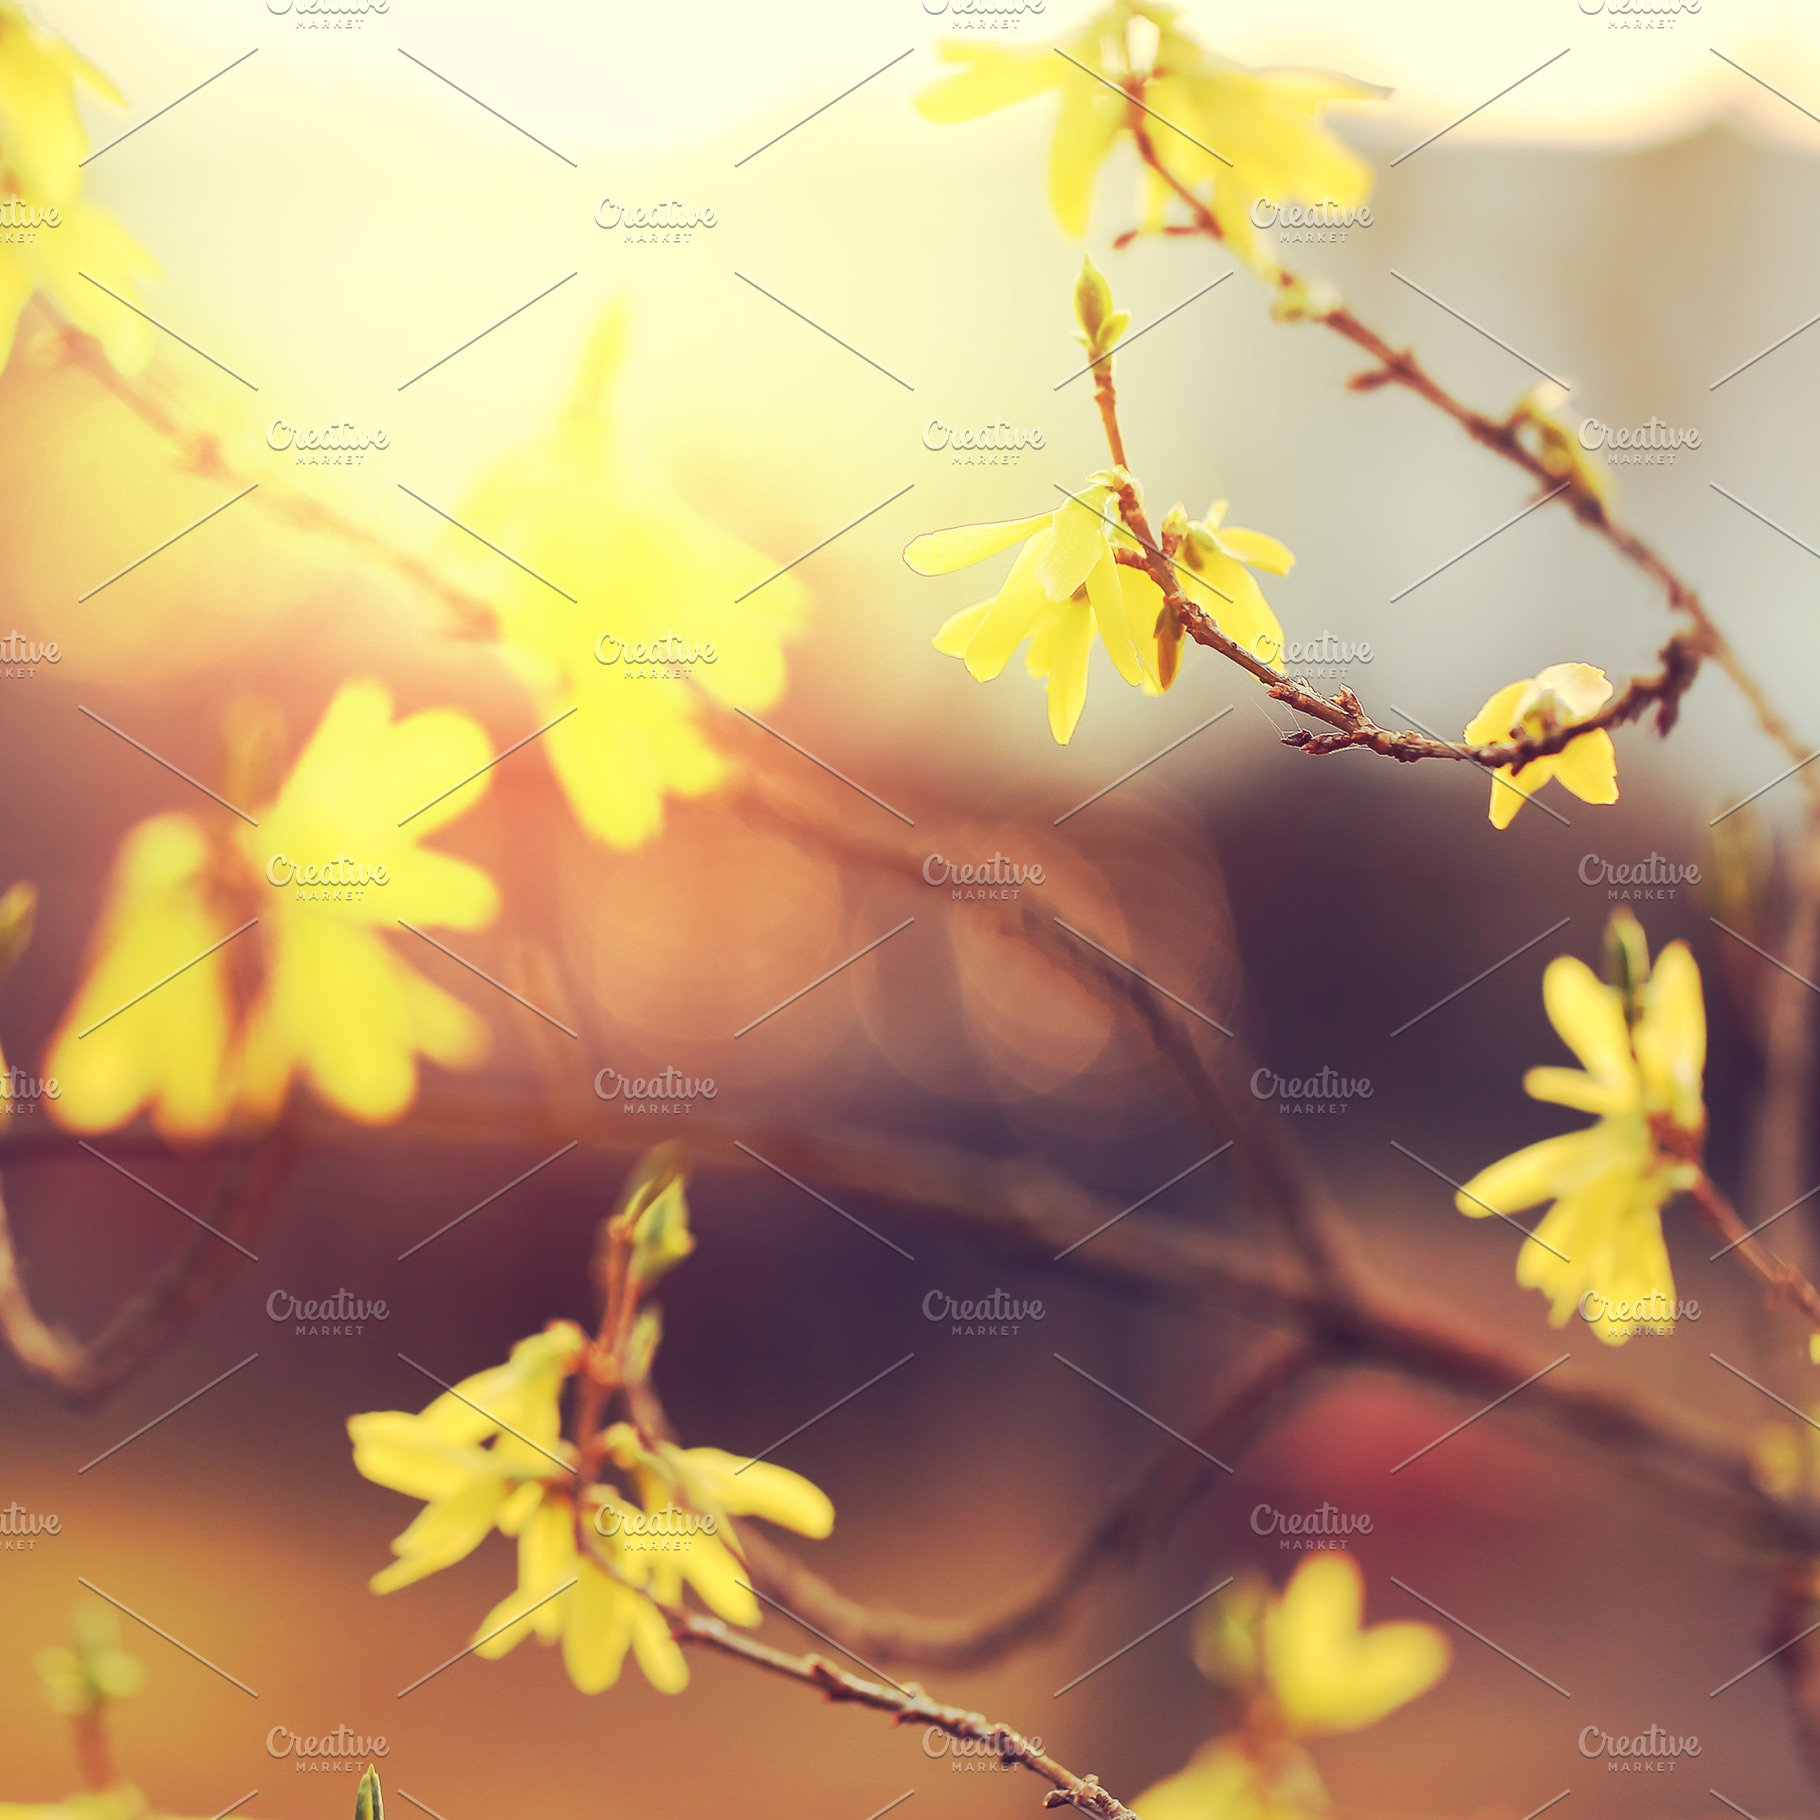 Yellow Flowers On Branches At Sunris High Quality Stock Photos